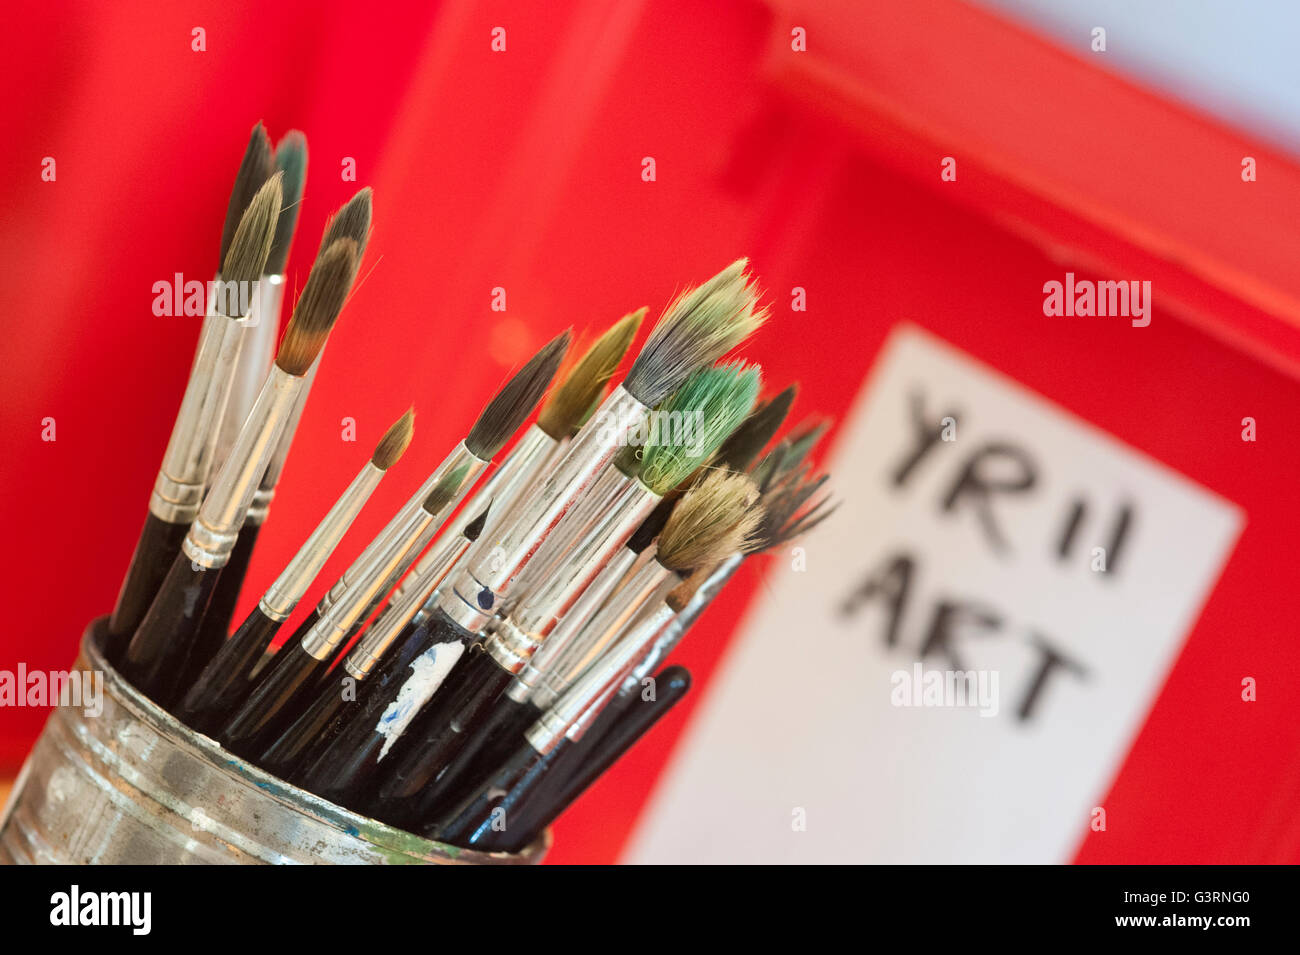 Paint brush pot in a school art department classroom. England. UK - Stock Image